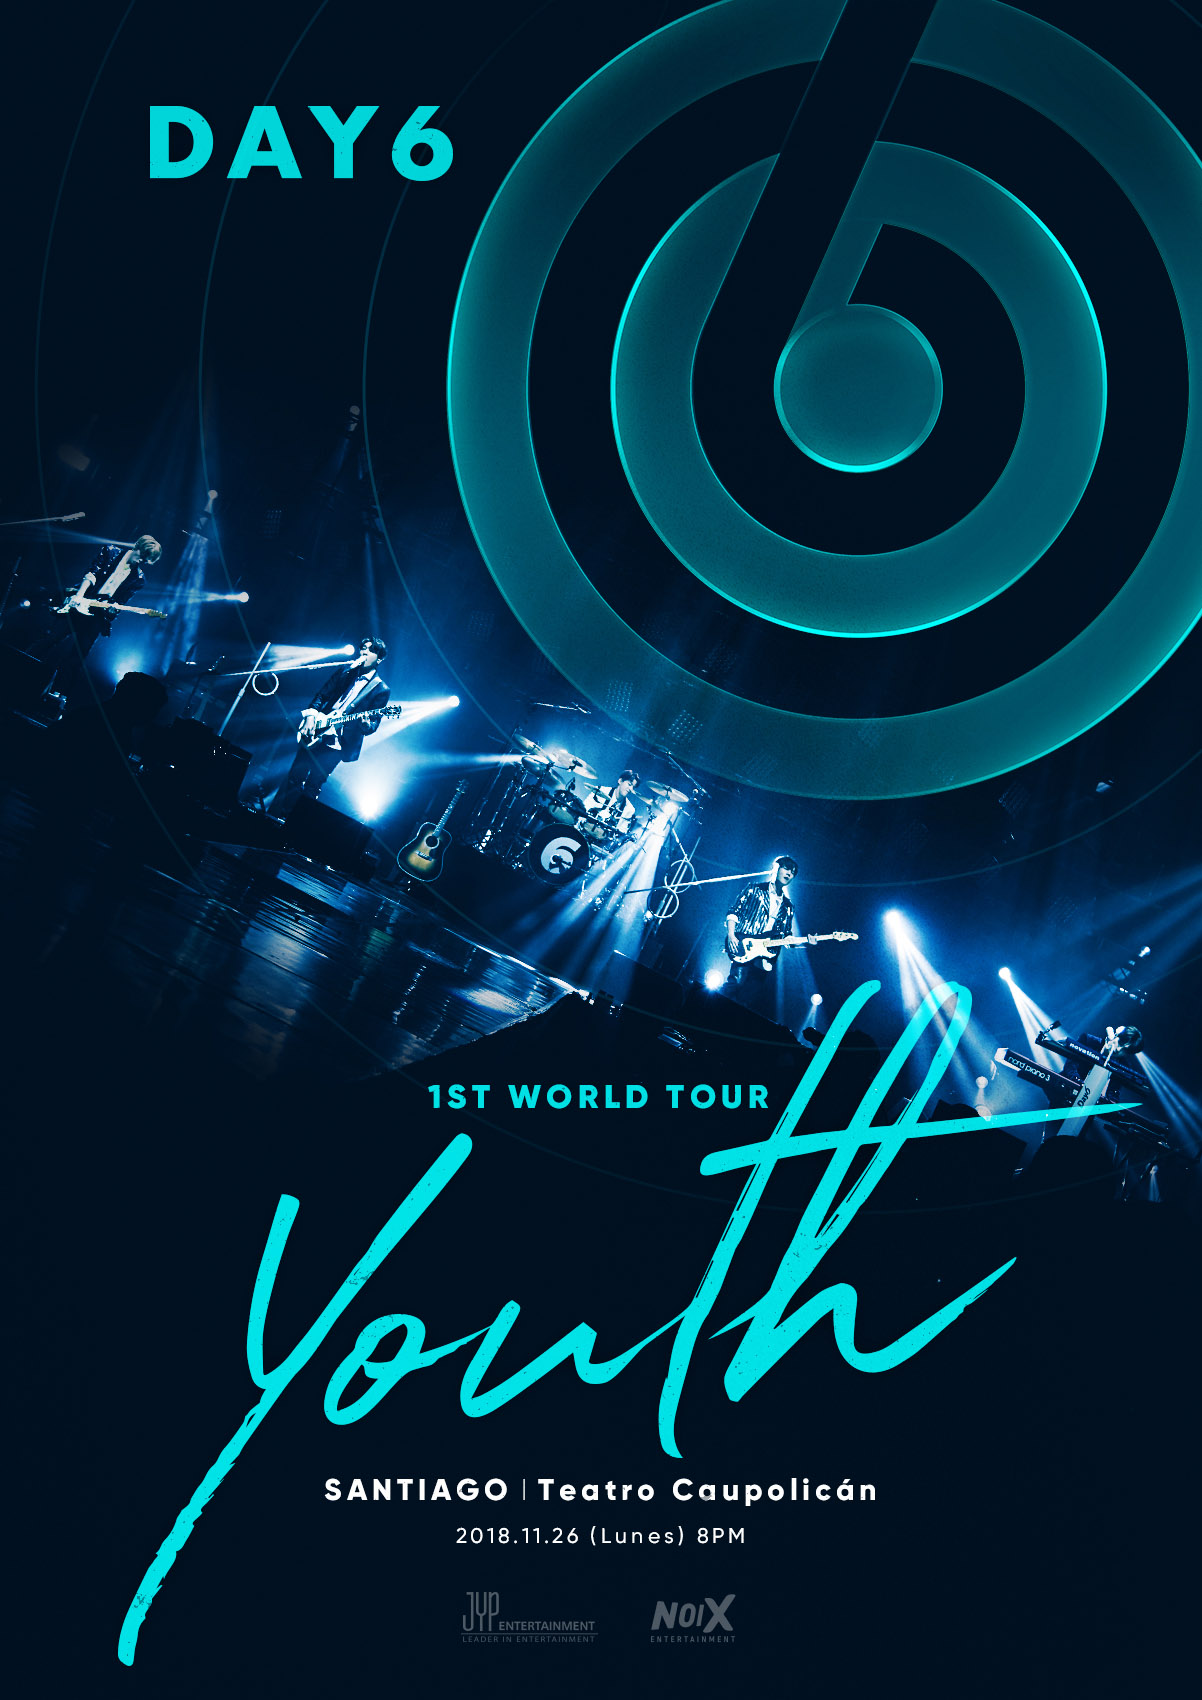 DAY6_1st tour_Main poster_CL